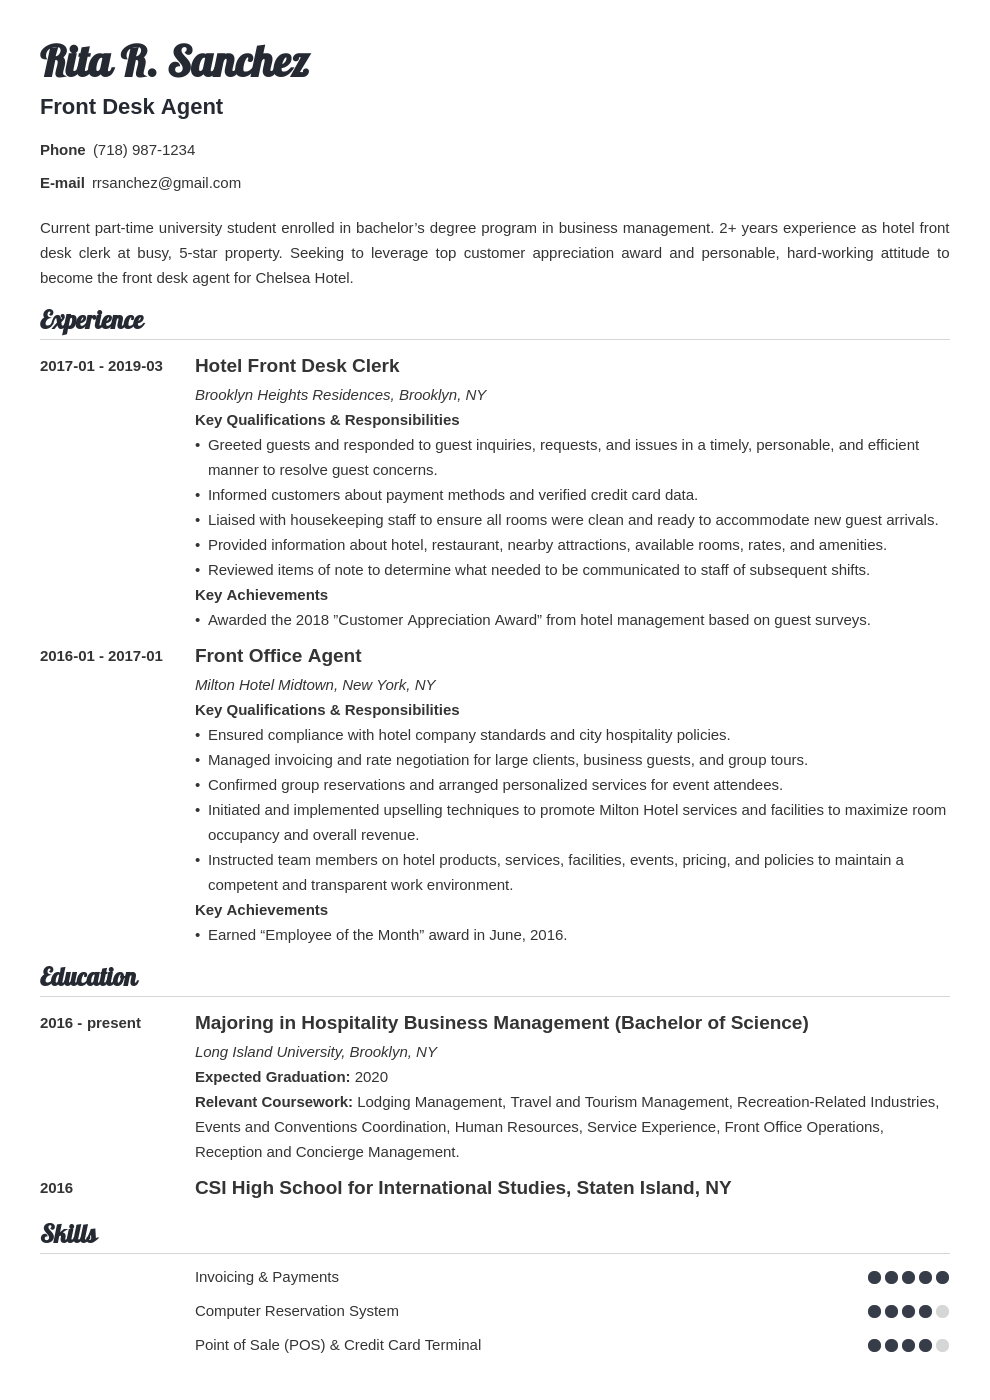 front desk resume example template valera